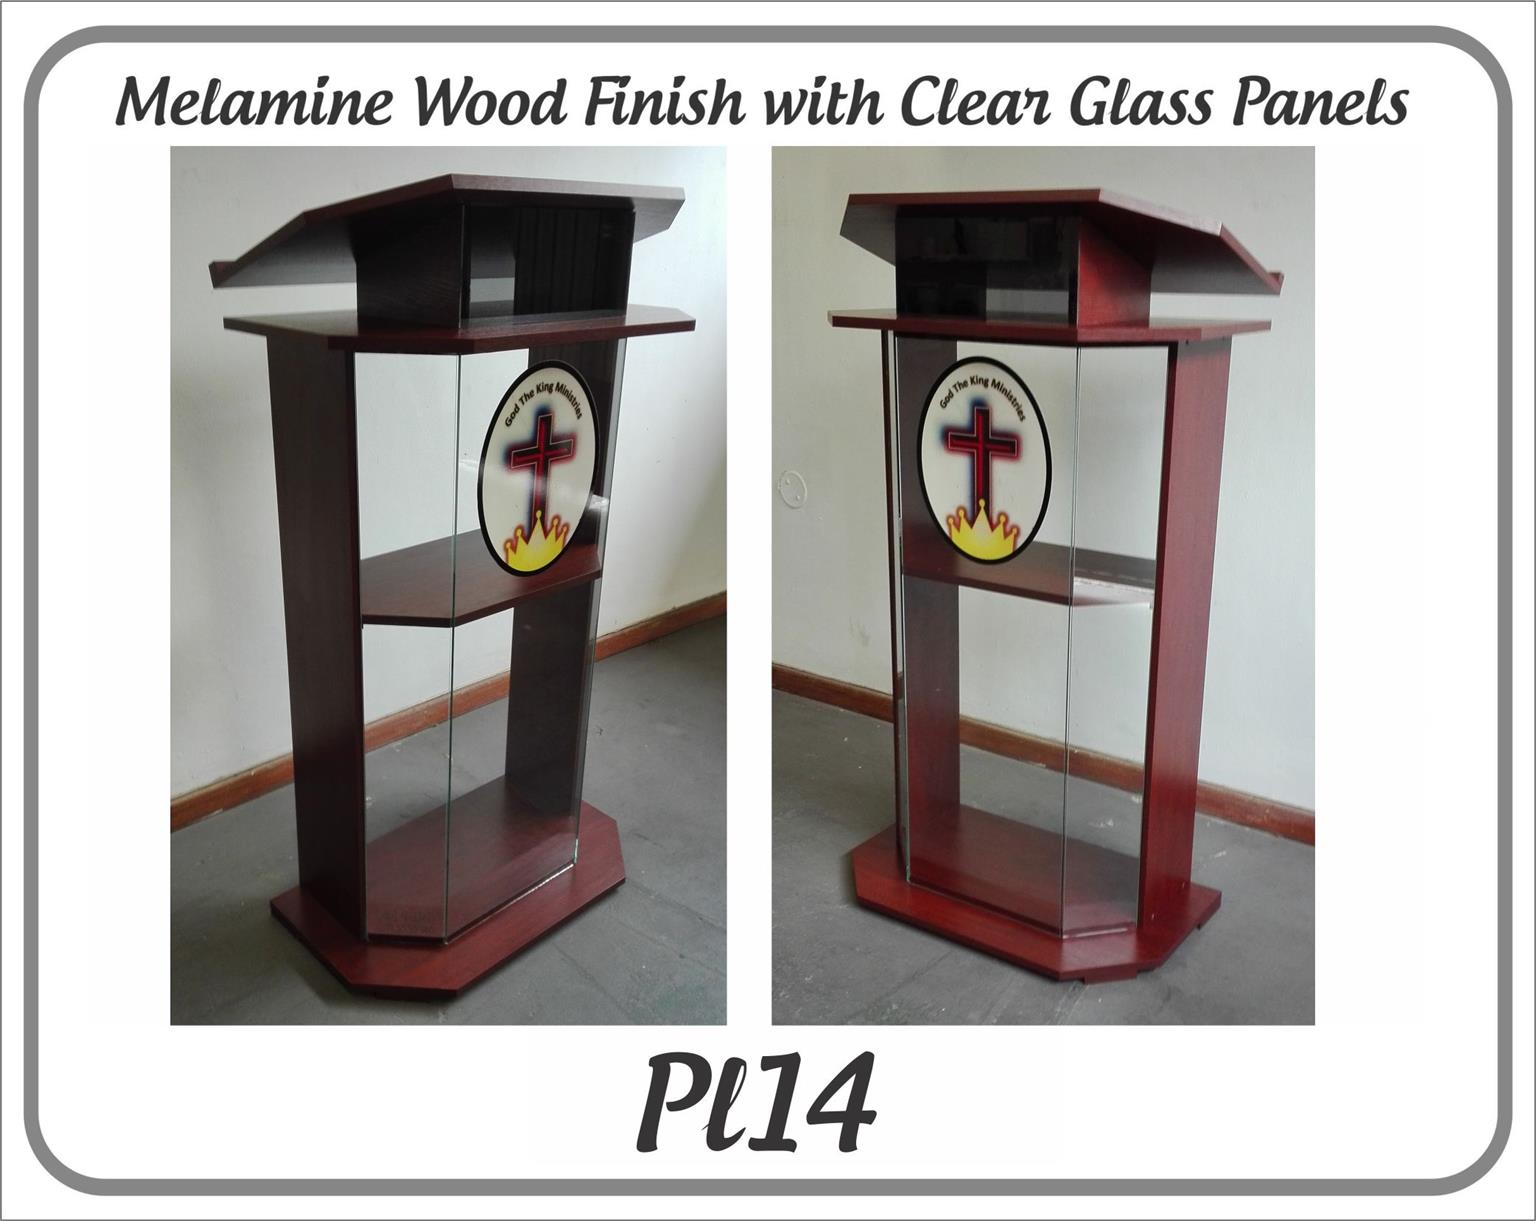 CHURCH OR FOR BUSINESS - PULPIT|LECTERN|PODIUM FOR SALE.